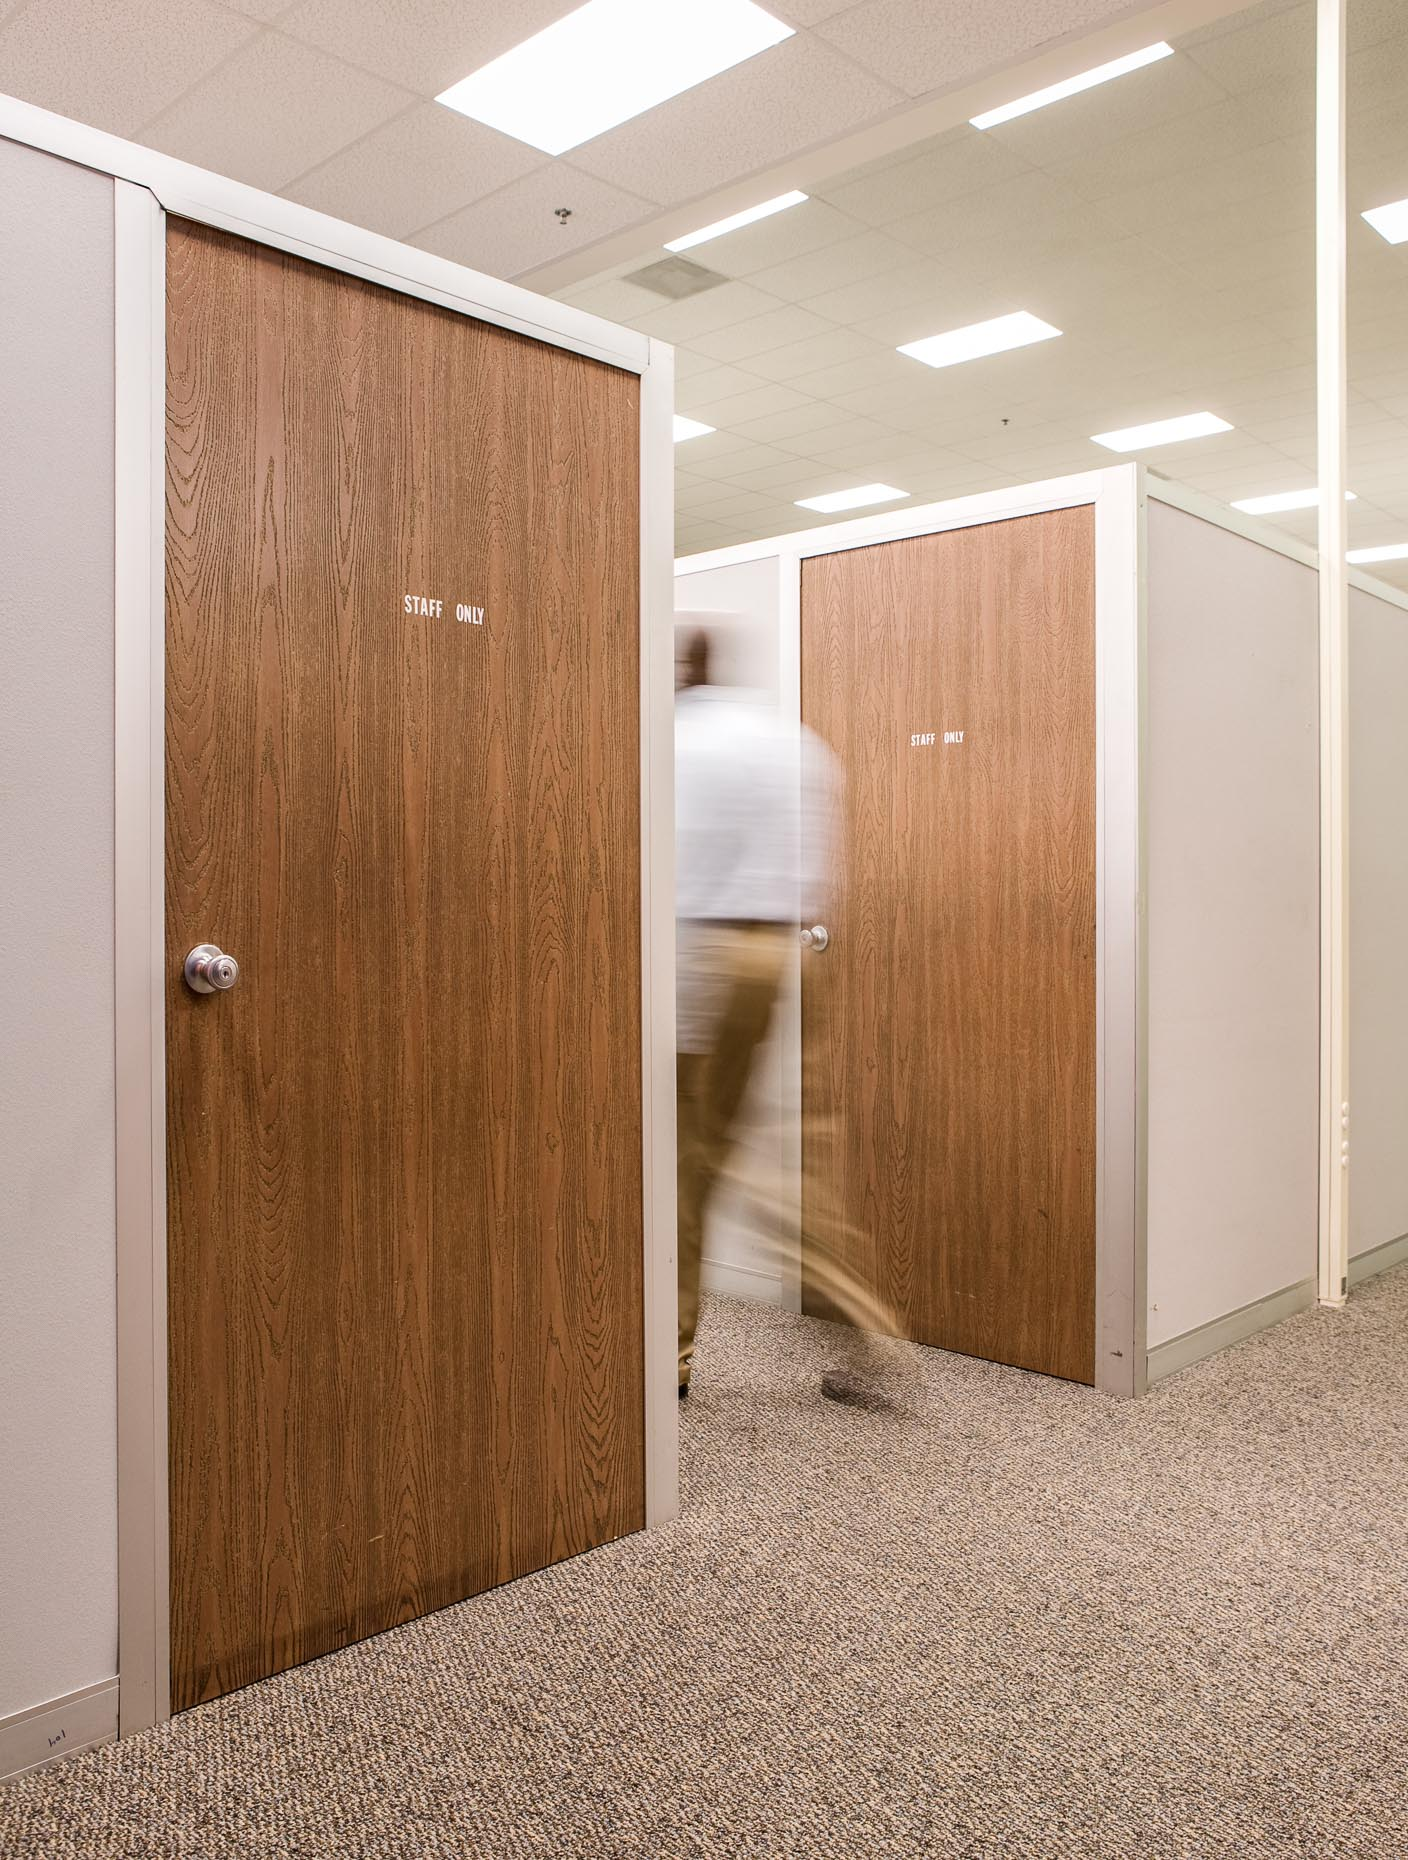 Man walking in office hallway with OFFICE sign on door. Corporate. David Zaitz Photography.